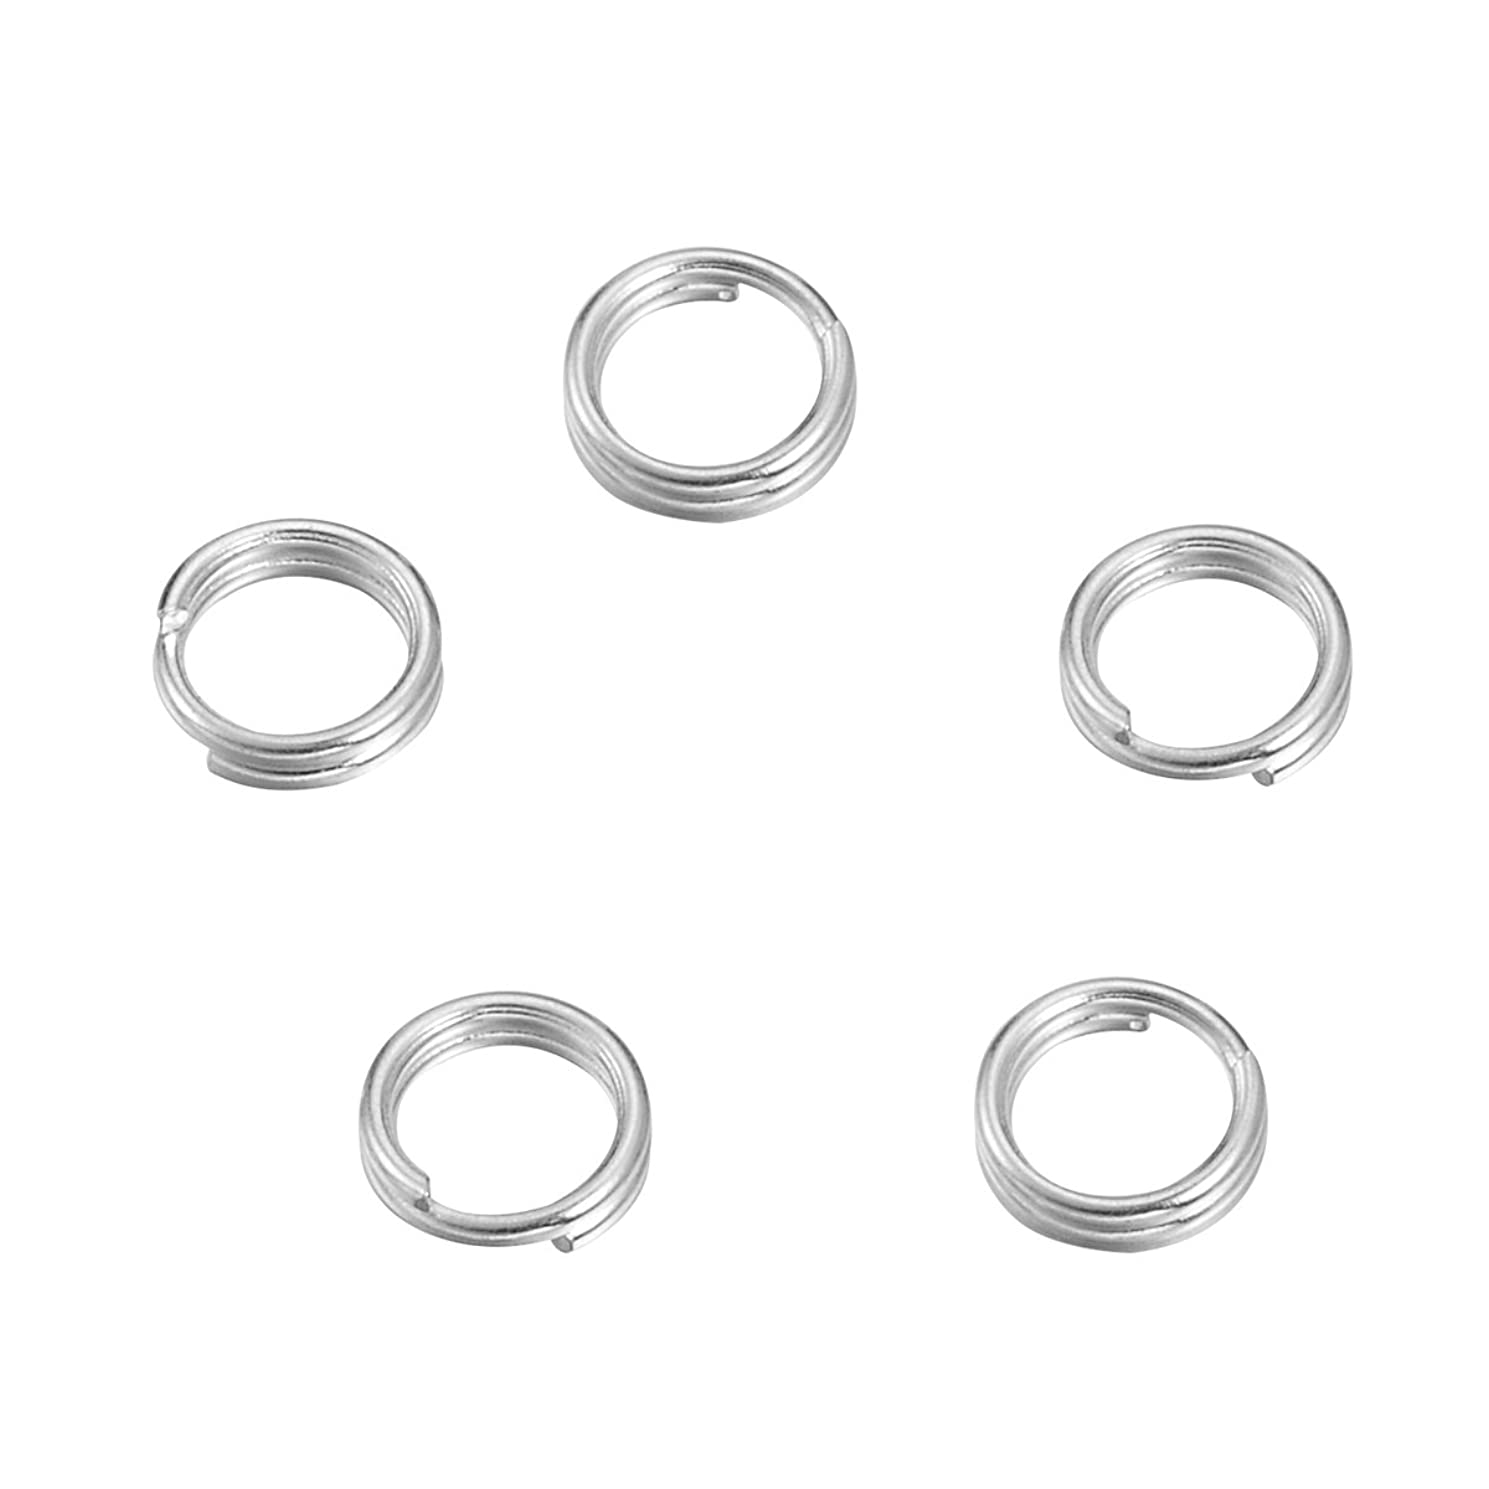 VALYRIA Sterling Silver Split Jump Ring Connector Charm Jewelry Findings,10pcs 7.0mmx0.7mm